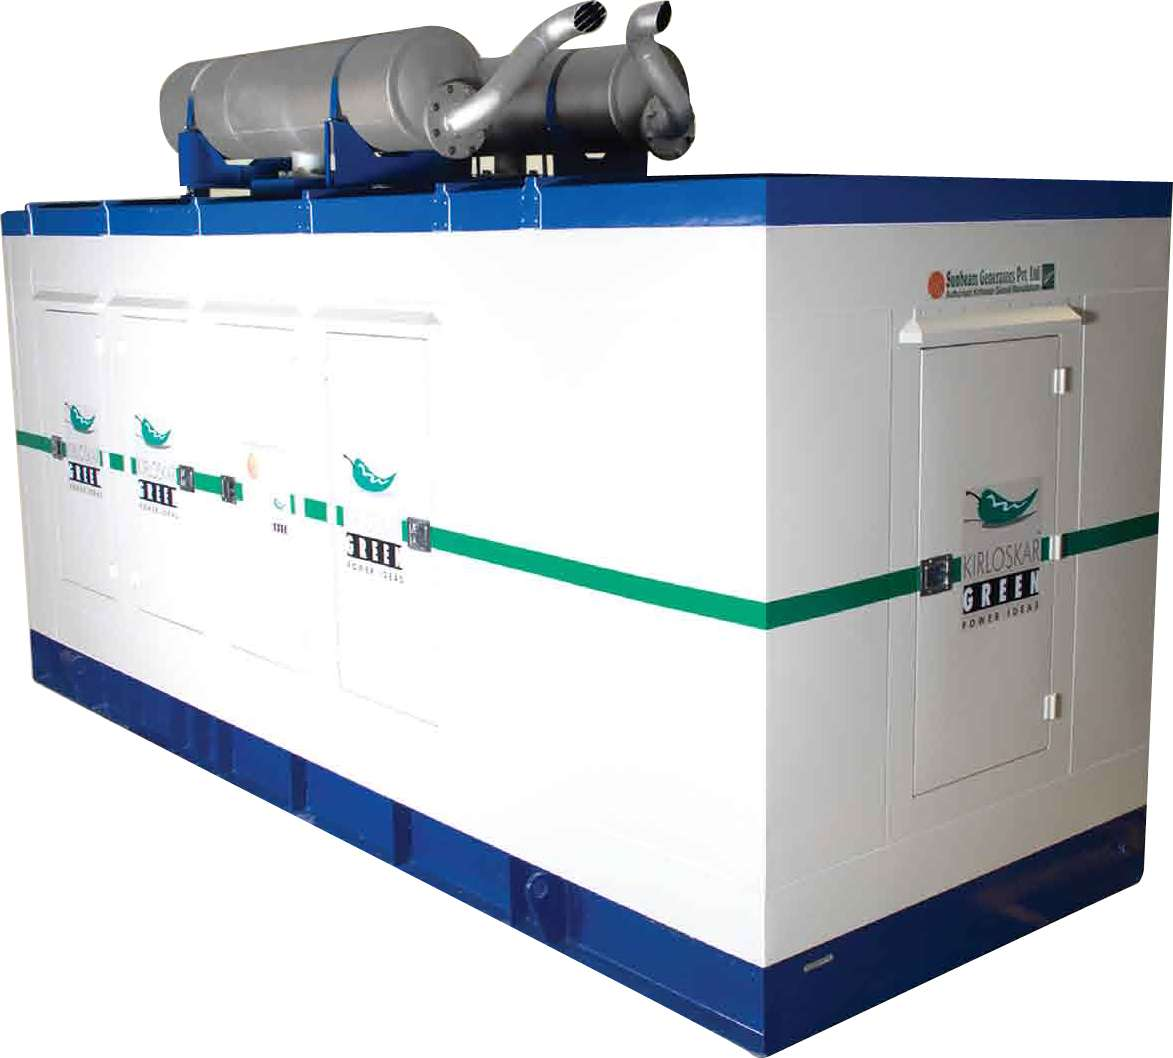 NOT PAID, Diesel Generator For Rent In Chennai,Commercial Diesel Generator In Chennai,Commercial Generator For Hire In Chennai,Commercial Generator For Rent In Chennai,Diesel Generator For Industries In Chennai